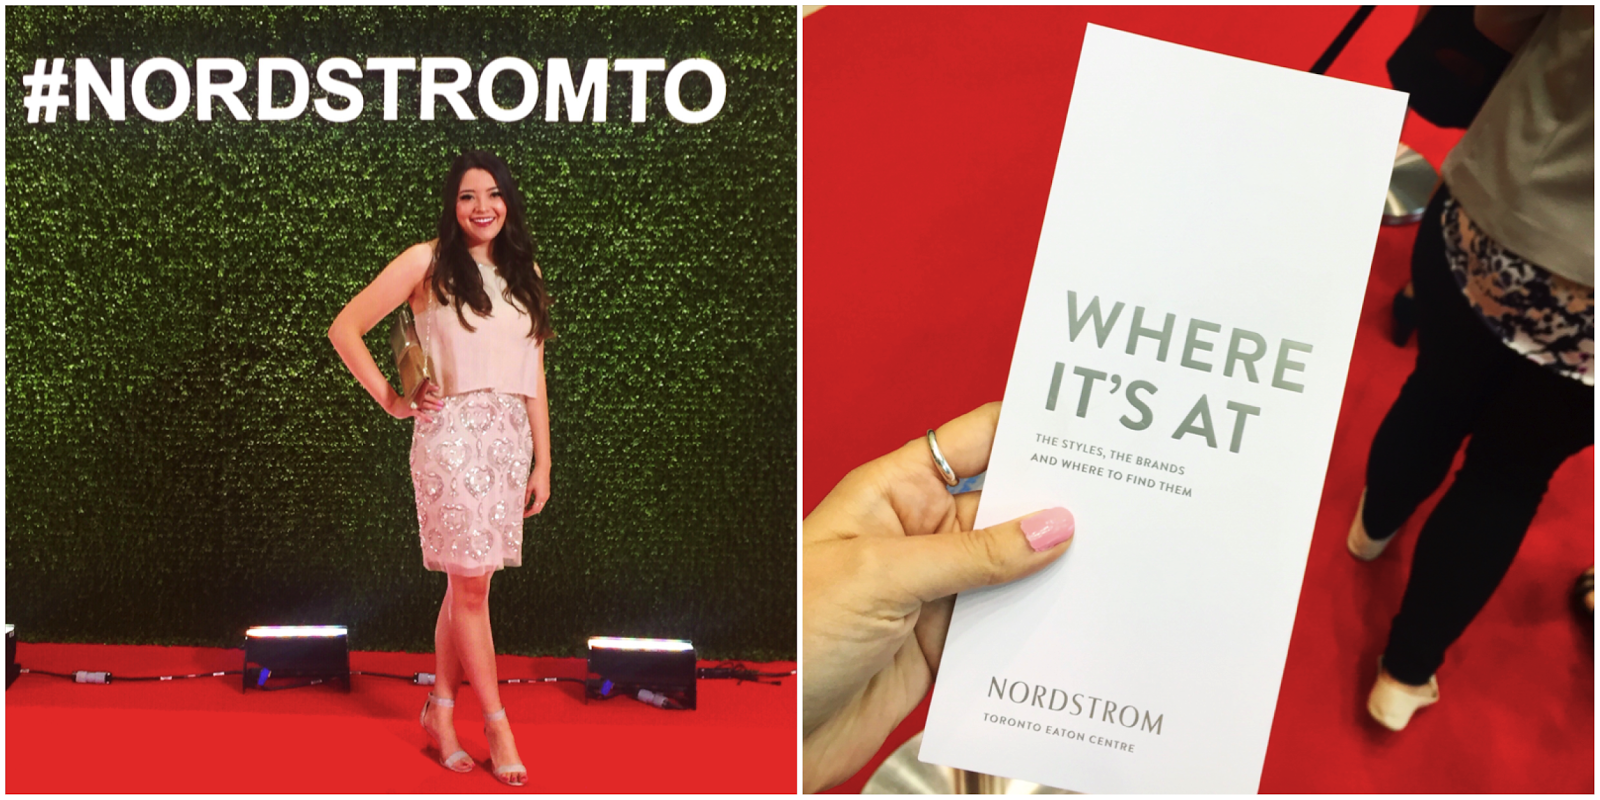 Nordstrom Toronto Eaton Center Yorkdale Location opening gala red carpet